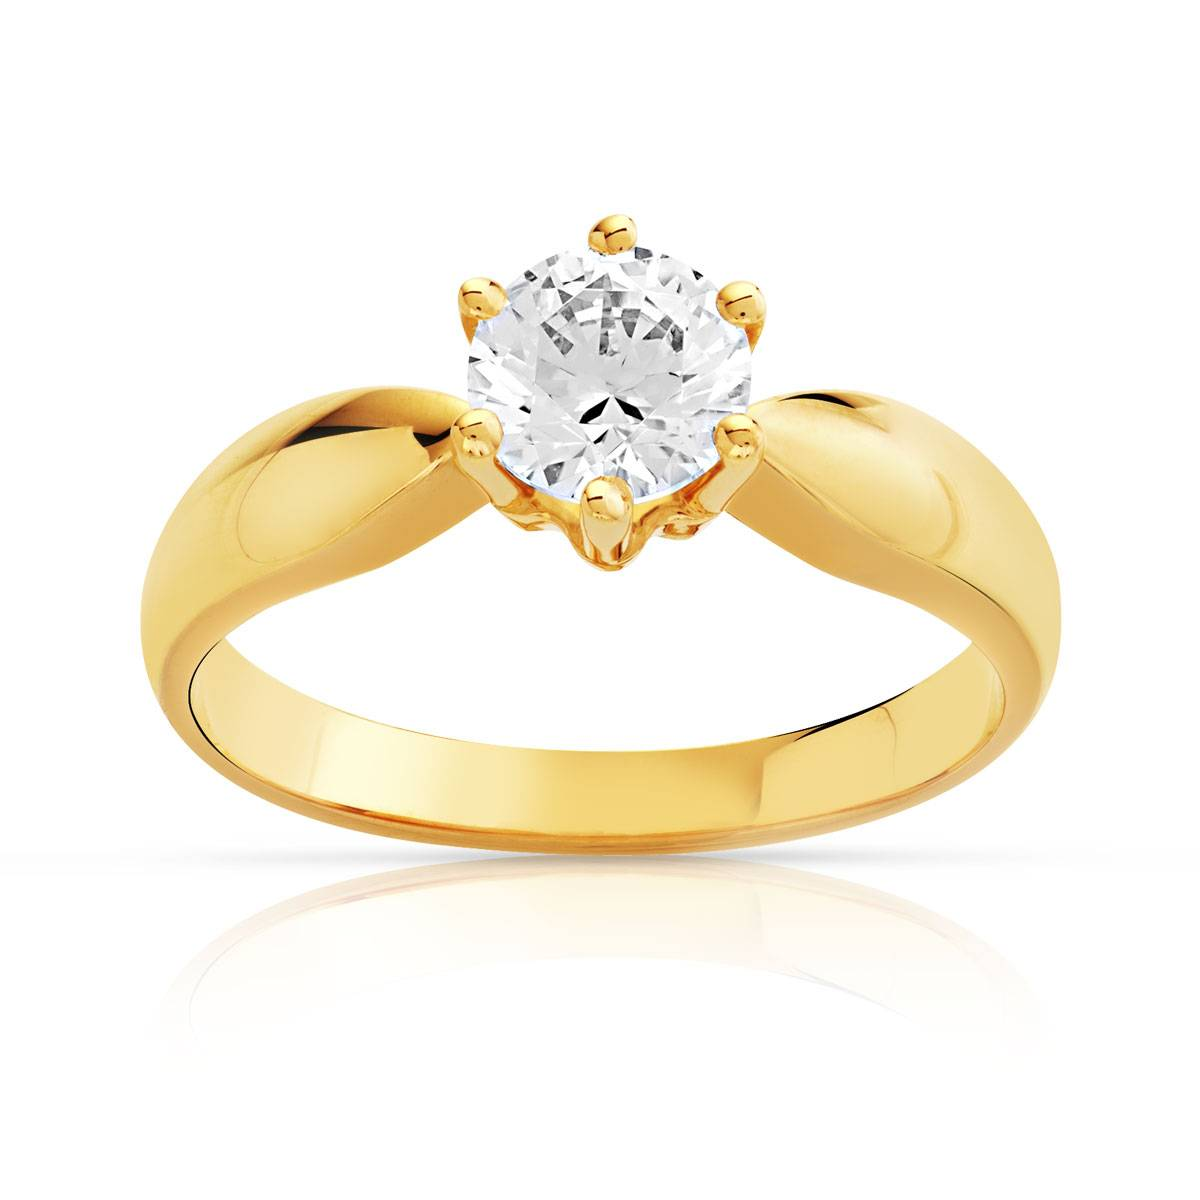 MATY Bague solitaire or 750 diamant synthétique 0.70 carat- MATY